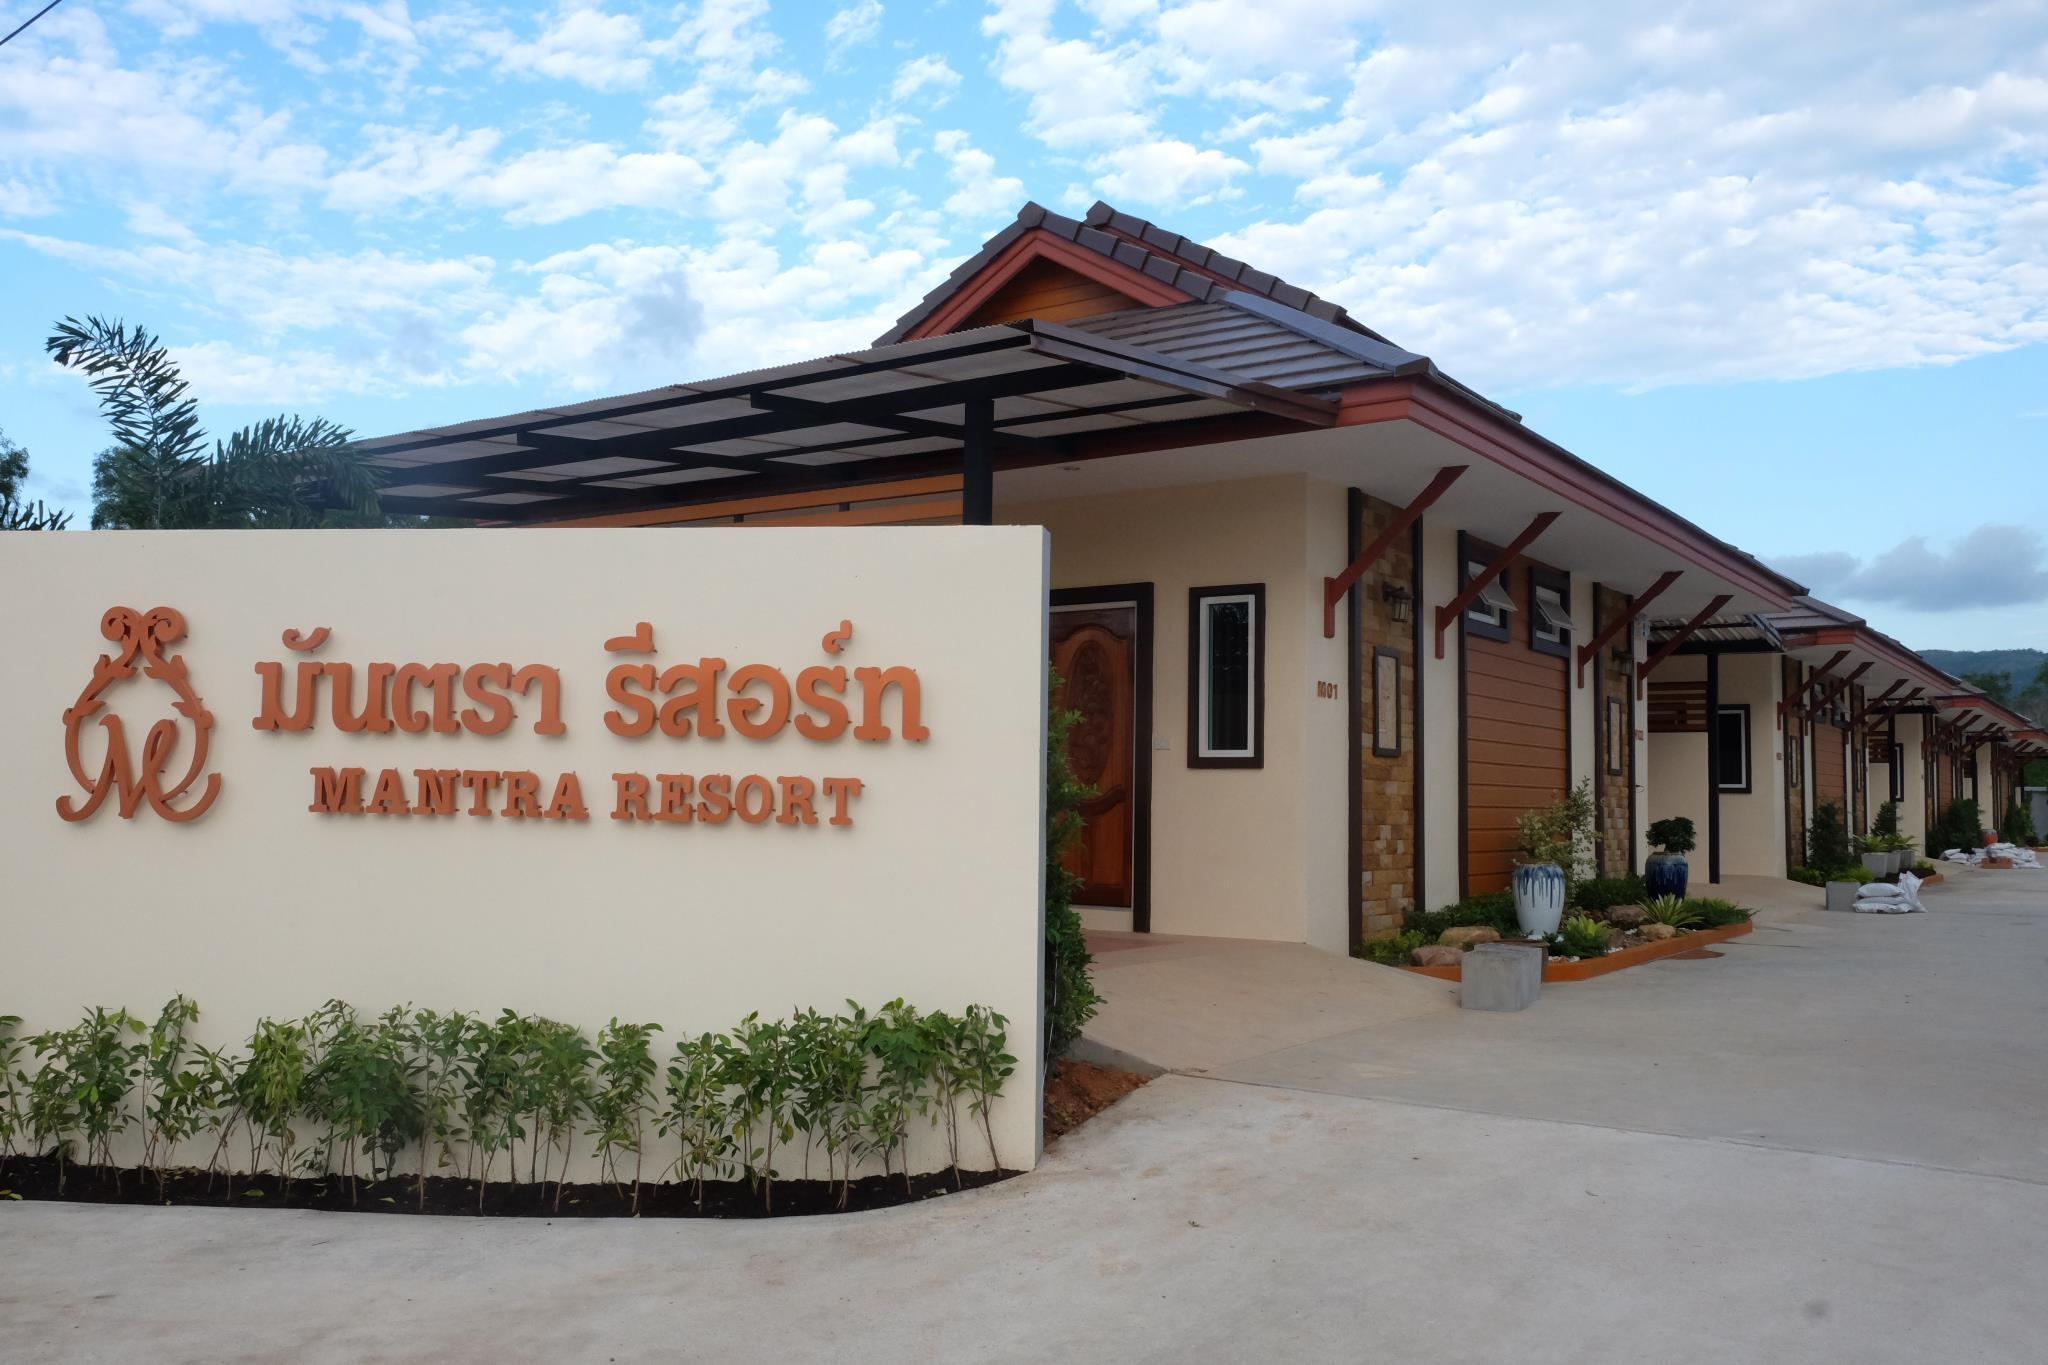 Mantra resort